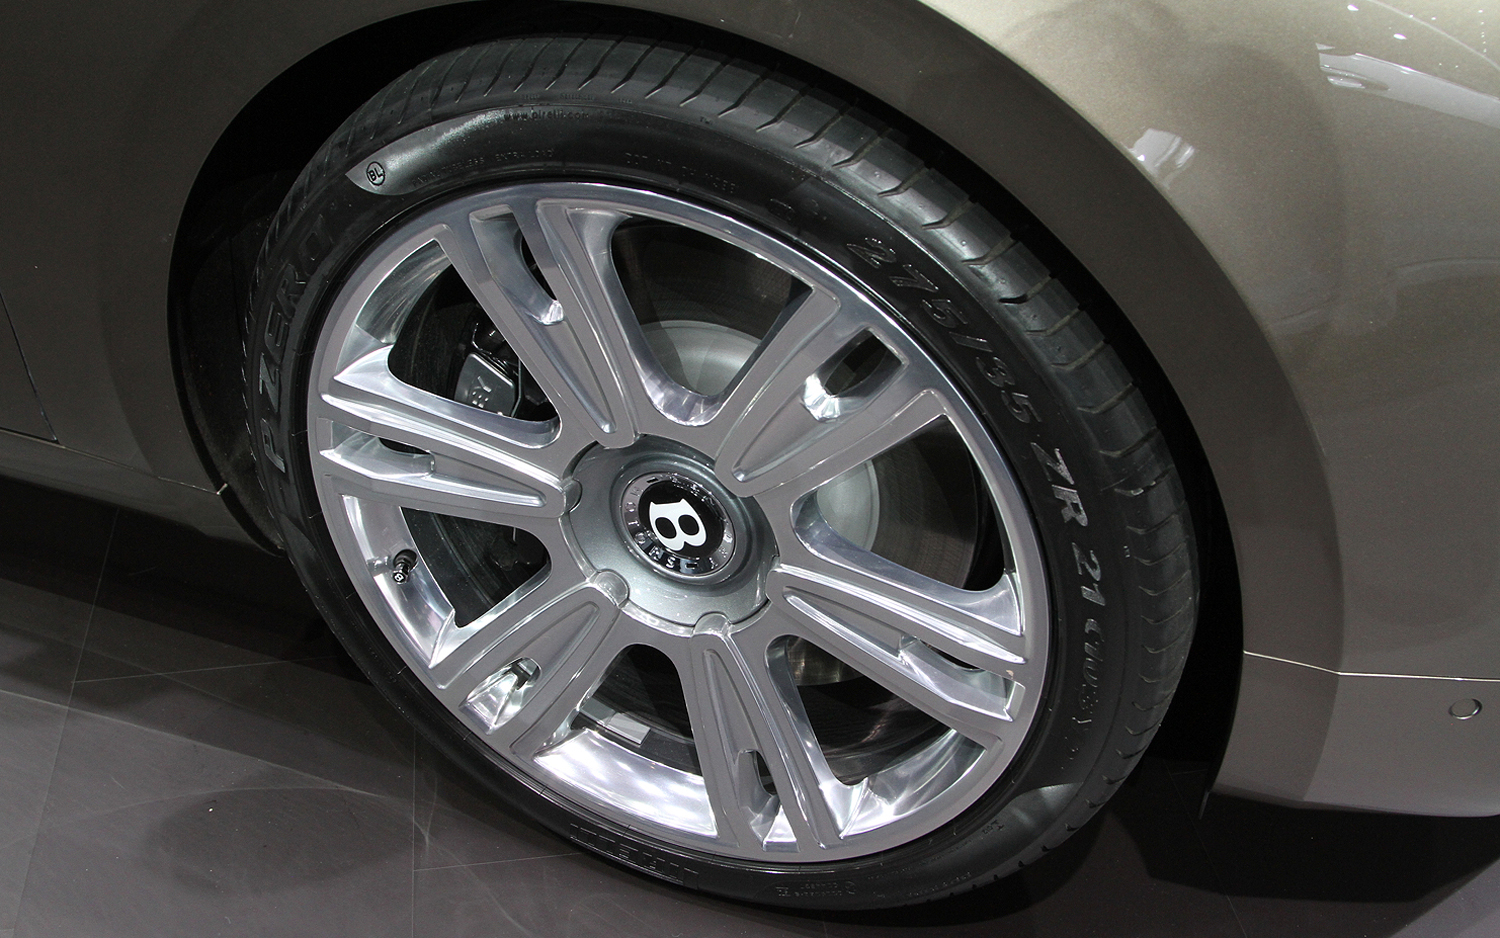 Bentley Flying Spur wheels #3